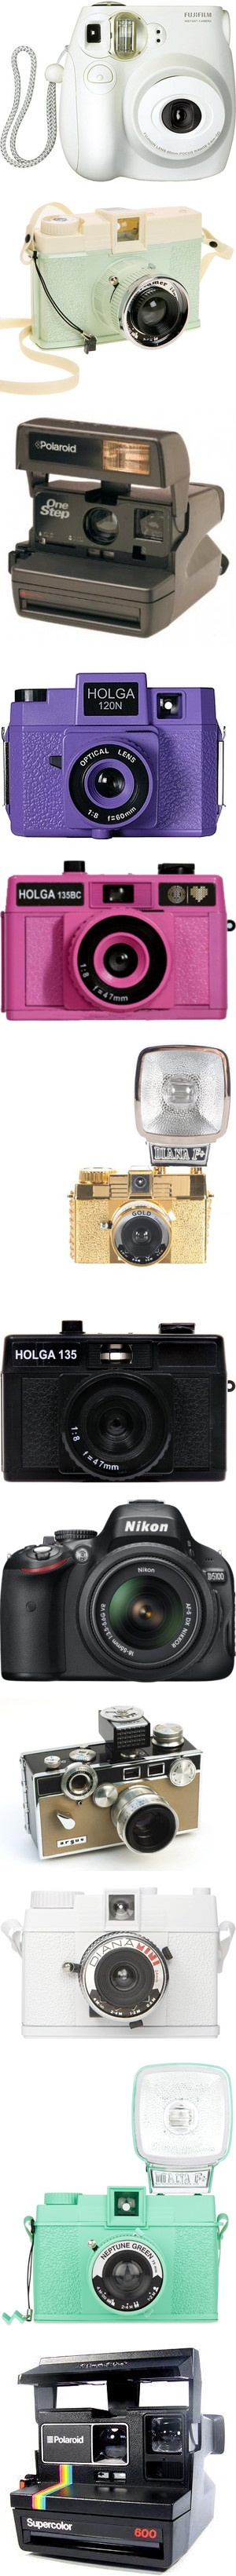 """Cameras"" by victoria-diaz ❤ liked on Polyvore"